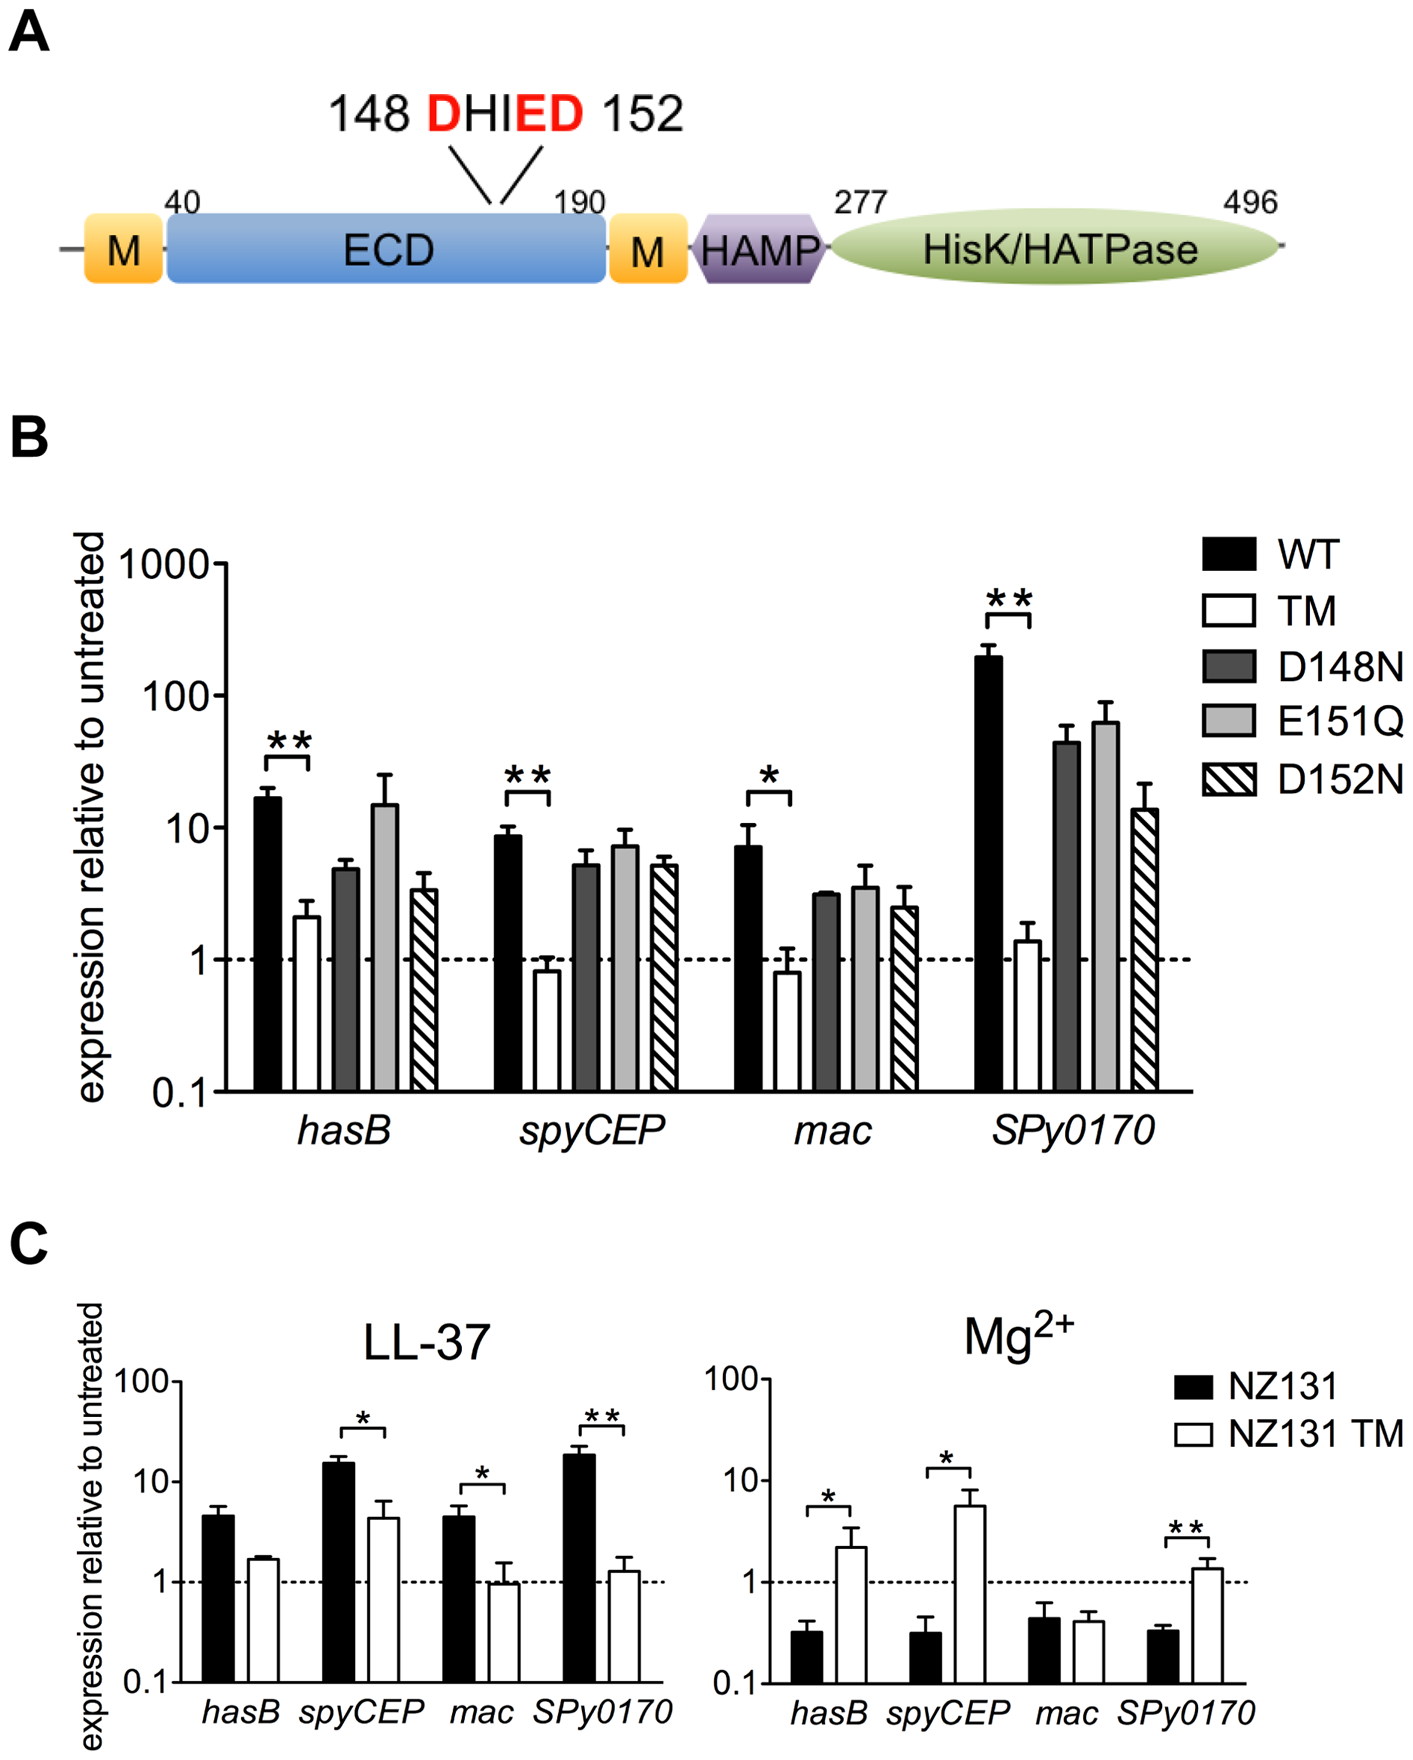 LL-37 and Mg<sup>2+</sup> signaling of CsrRS-regulated genes involves a cluster of negatively charged amino acid residues located in the CsrS extracellular domain.